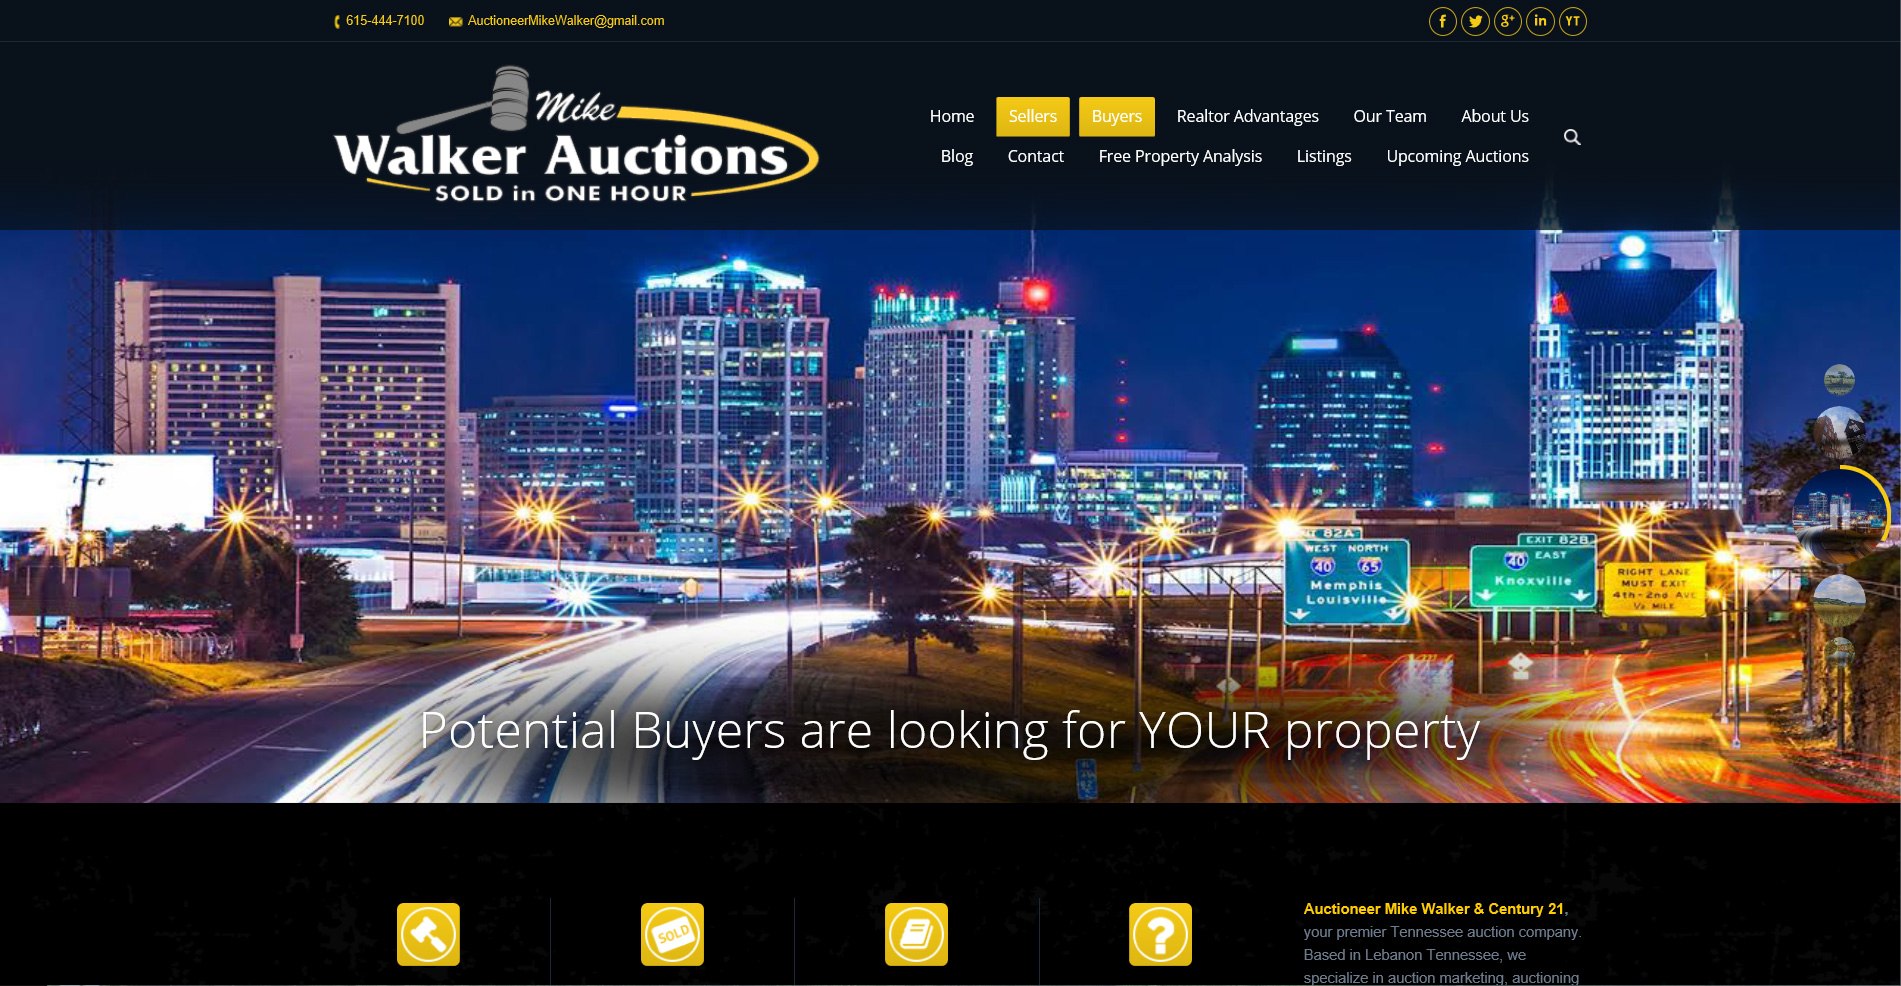 Mike Walker Auctions